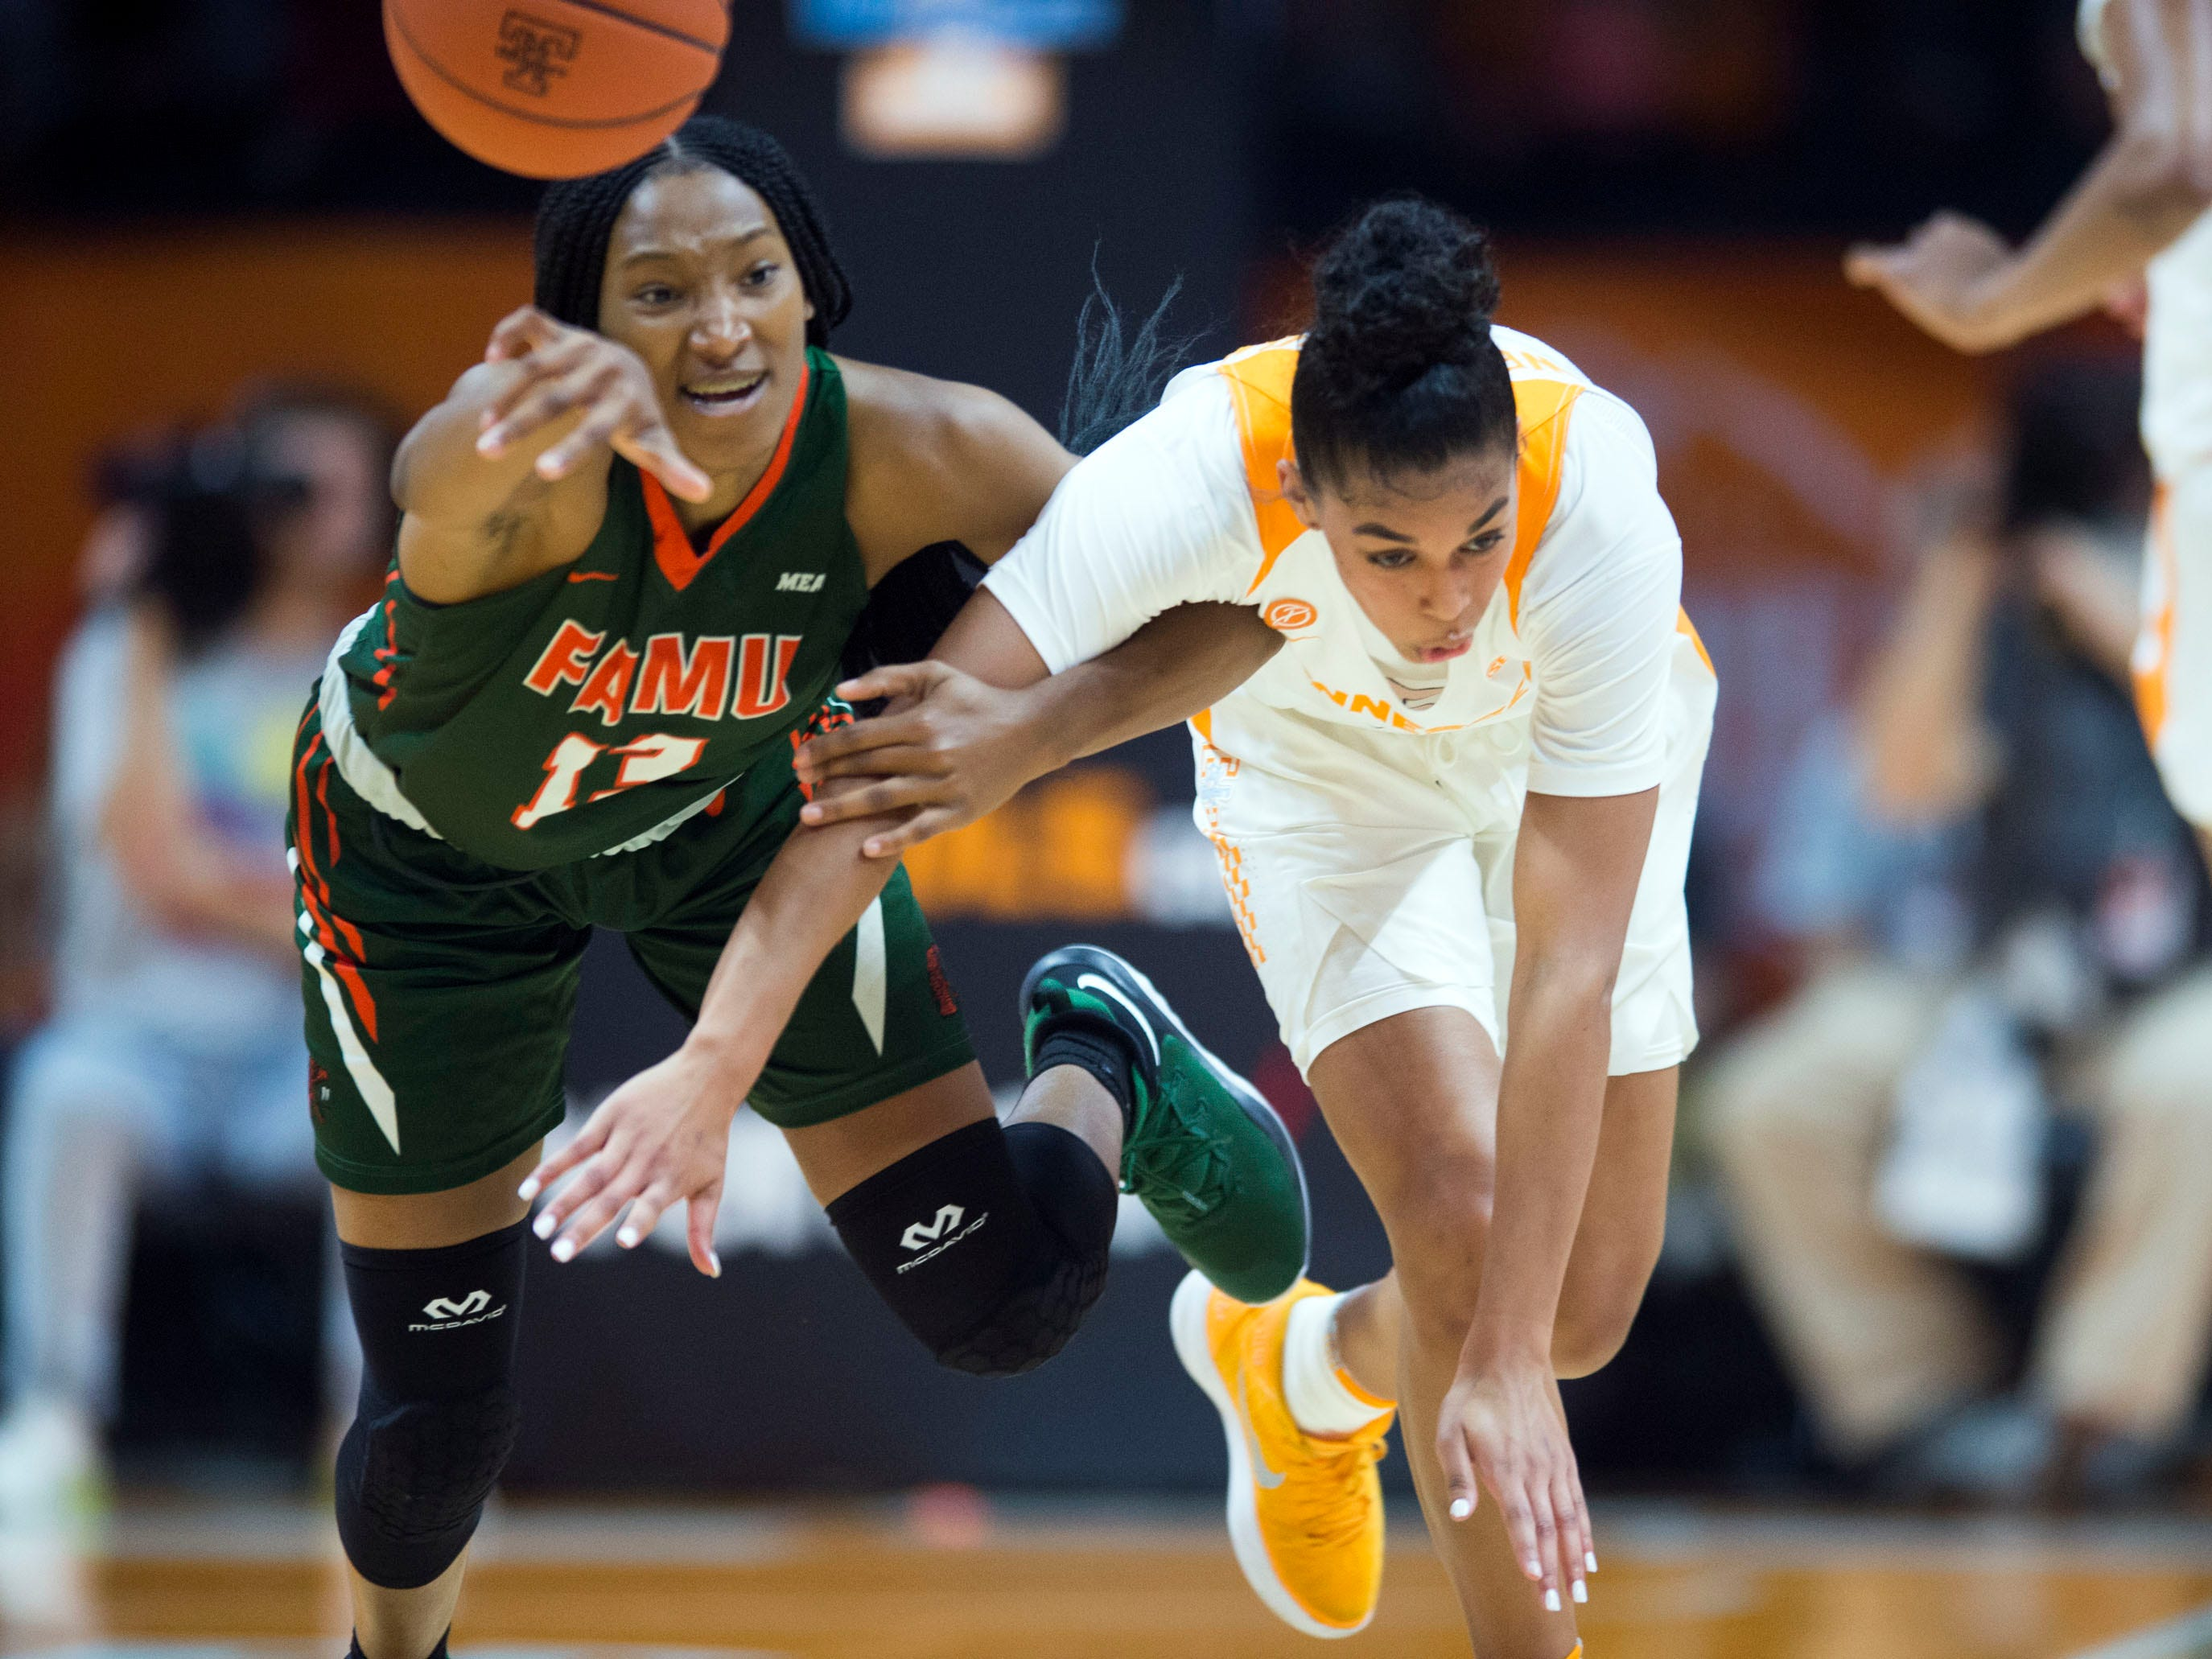 Florida A&M's Dy'Manee Royal (13) is fouled by Tennessee's Evina Westbrook (2) as they chase the ball during their game on Sunday, November 18, 2018 at Thompson-Boling Arena.